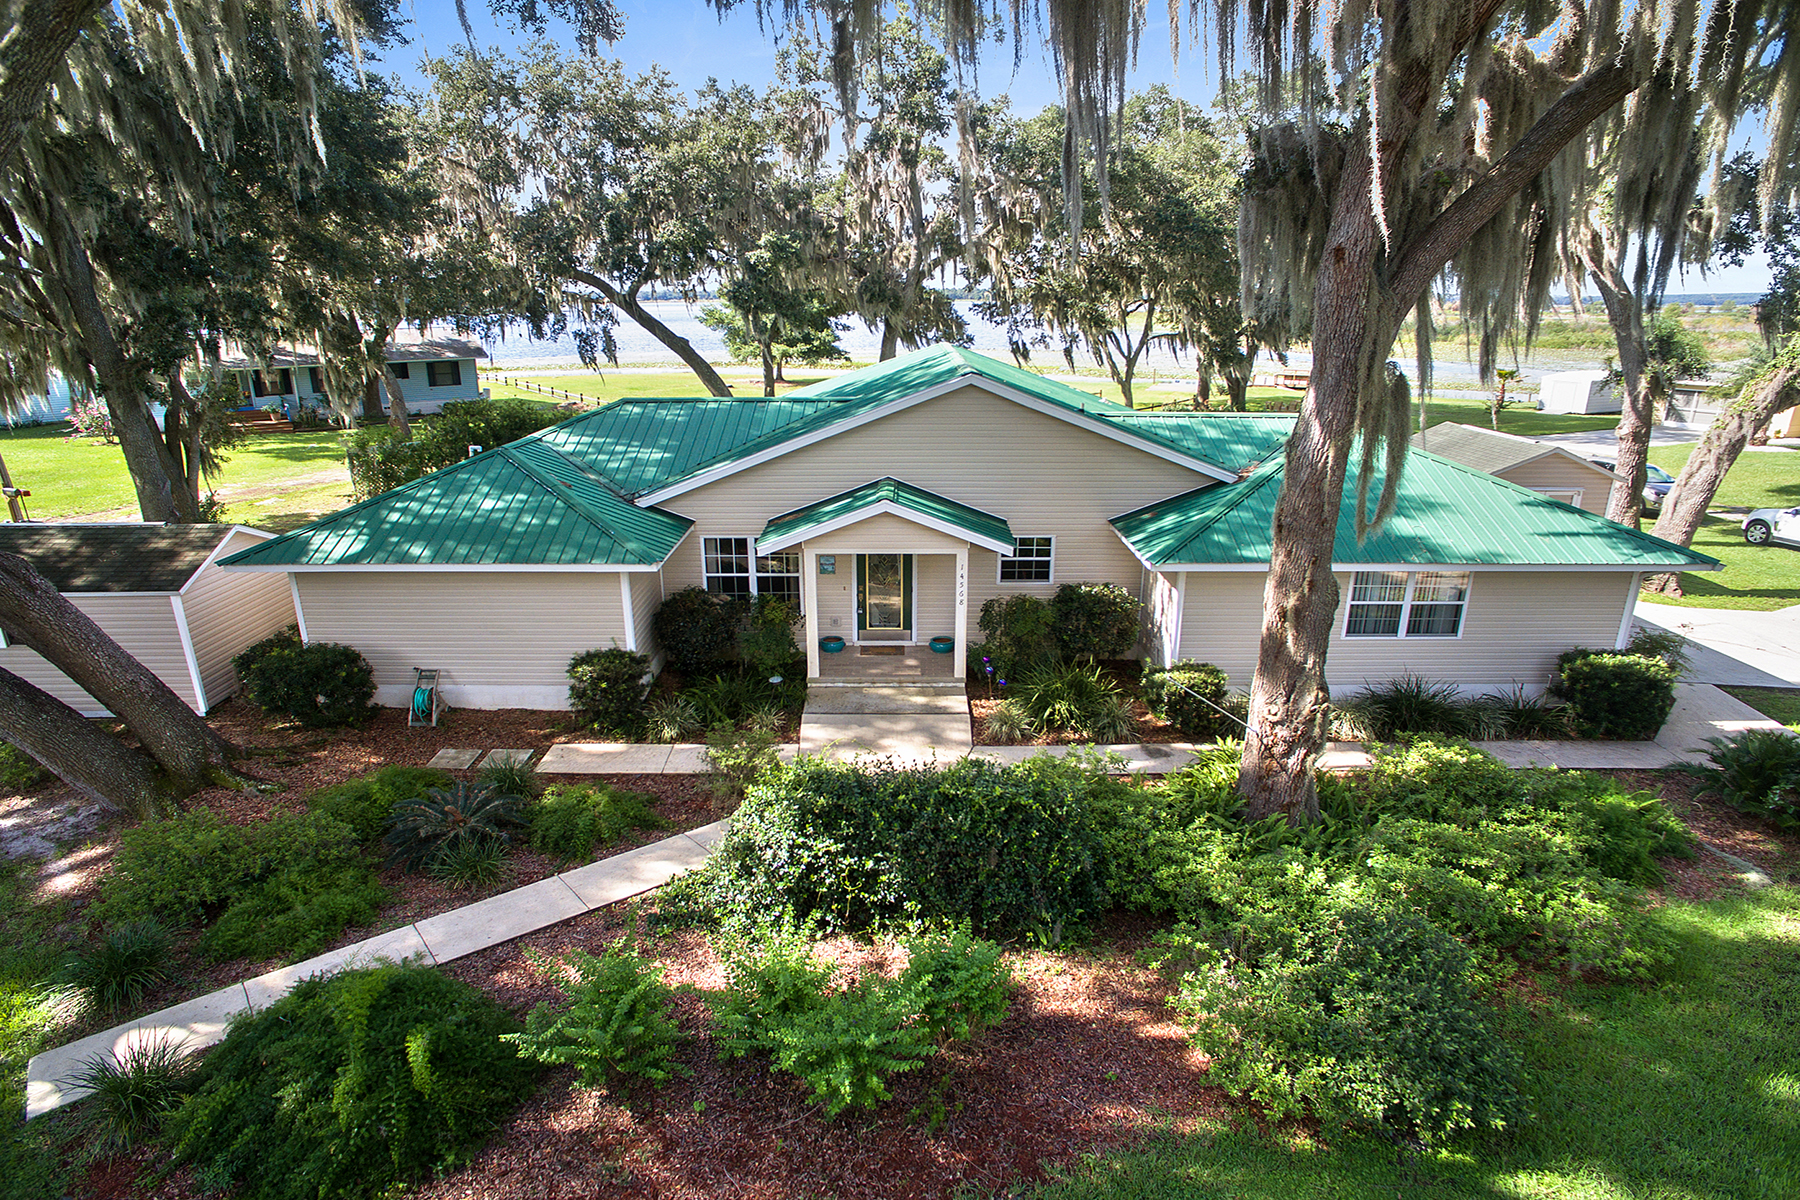 single family homes for Active at ORLANDO - FORT MCCOY 14568 Ne 248th Ave Salt Springs, Florida 32134 United States